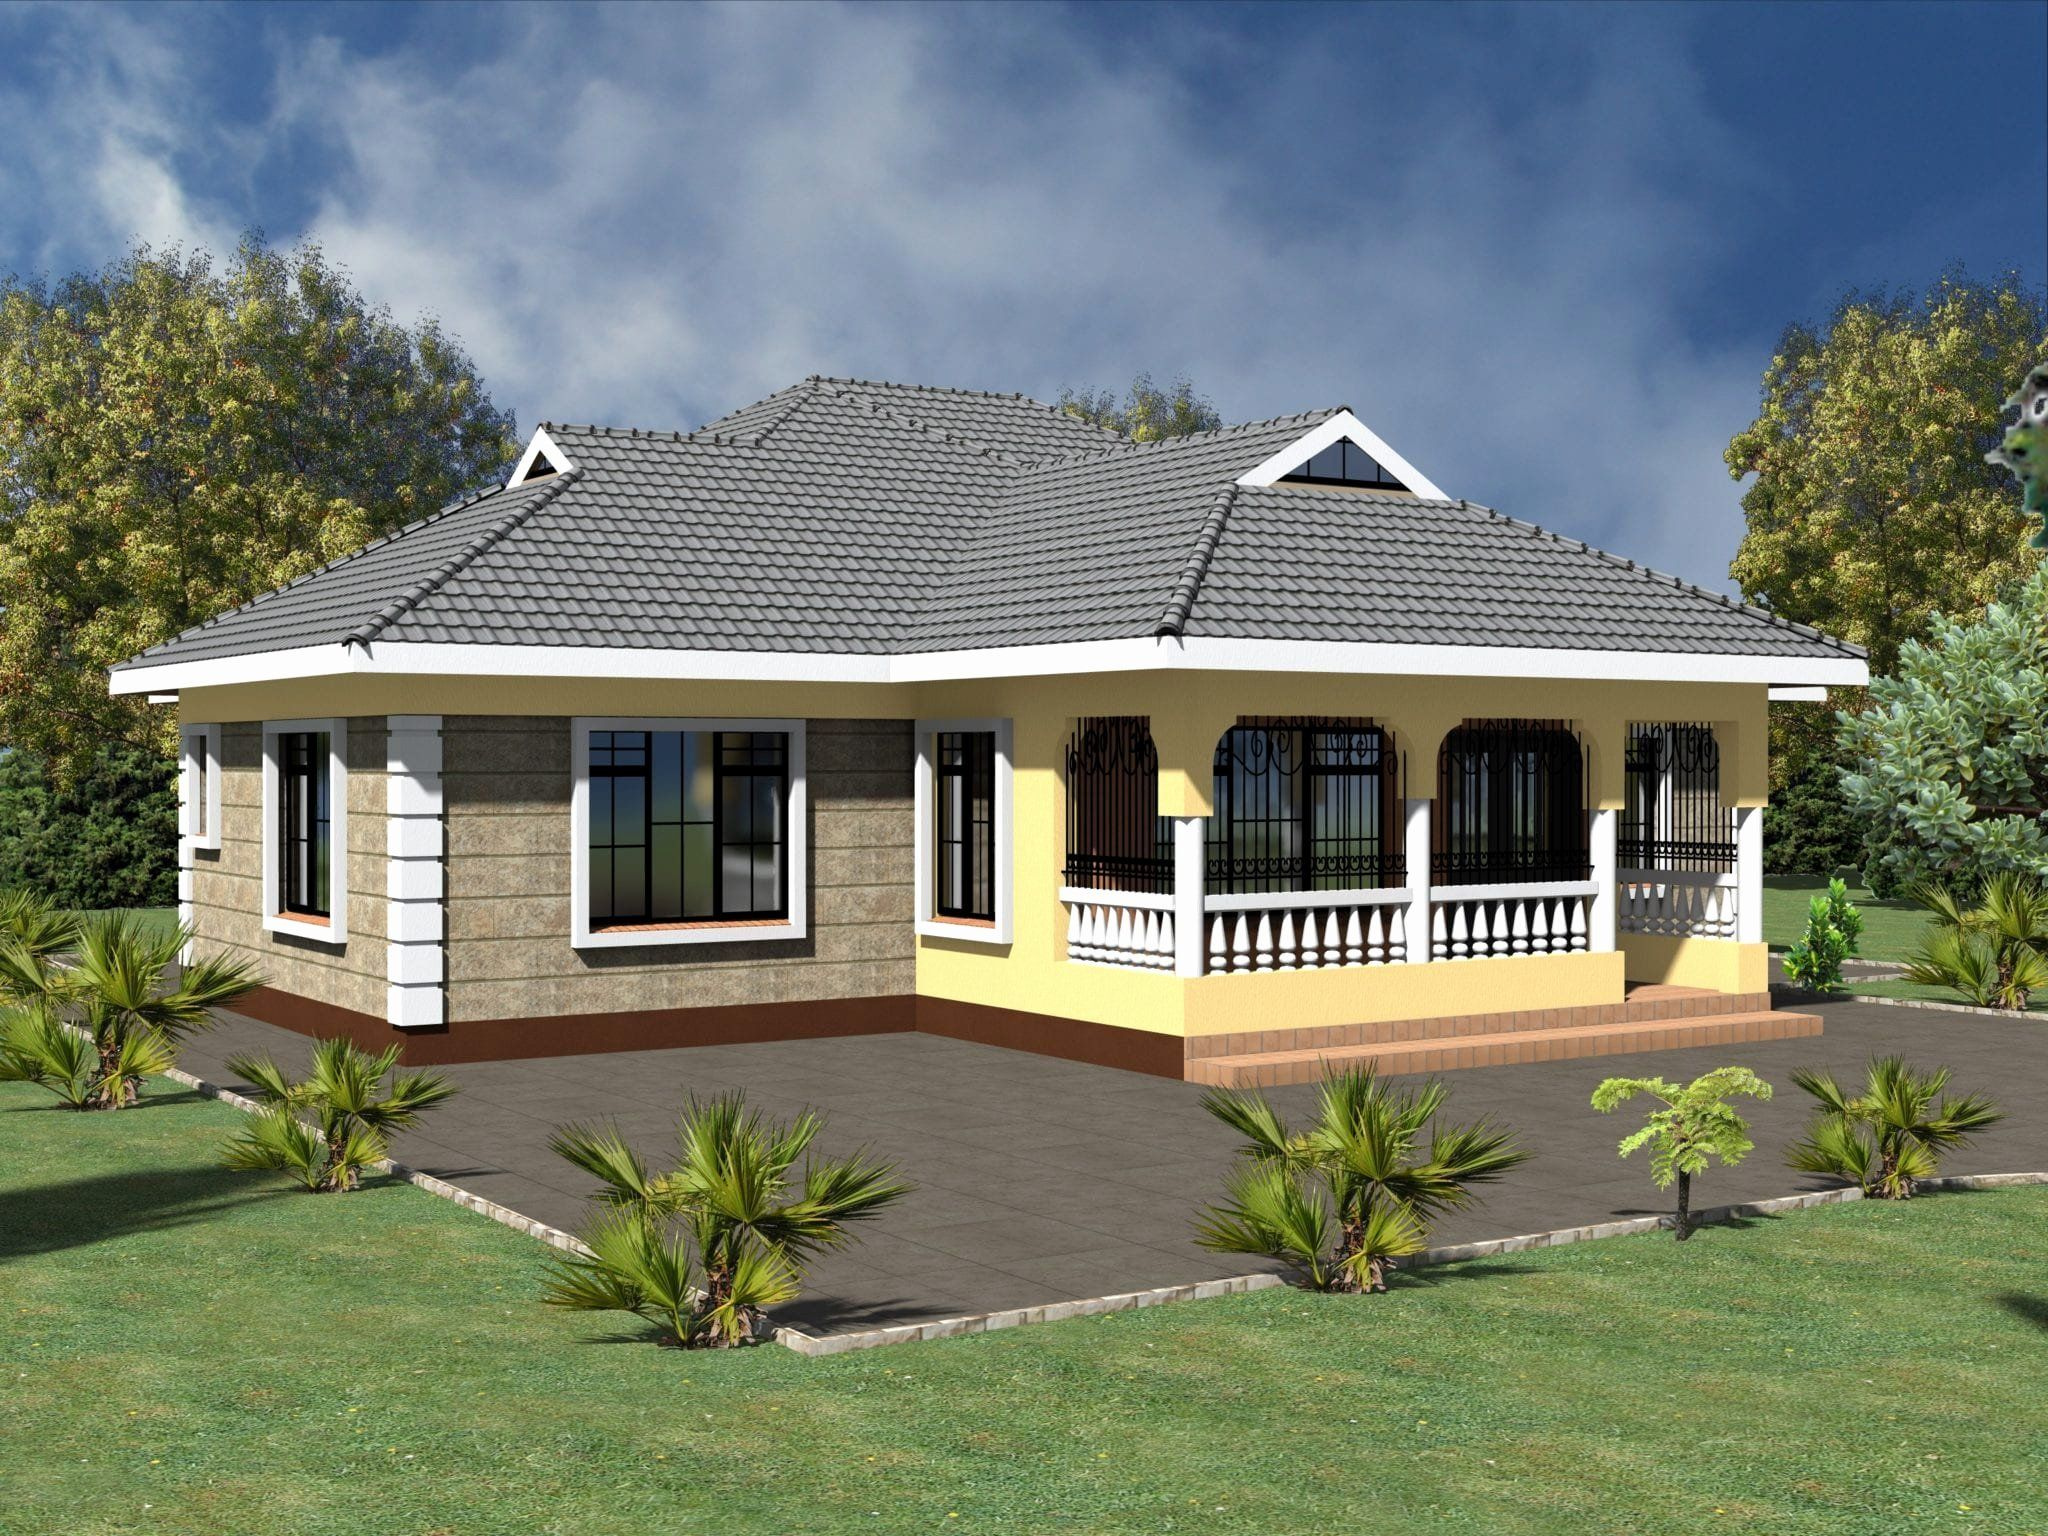 Cost Of Building A Three Bedroomed House In Kenya - HOME DECOR